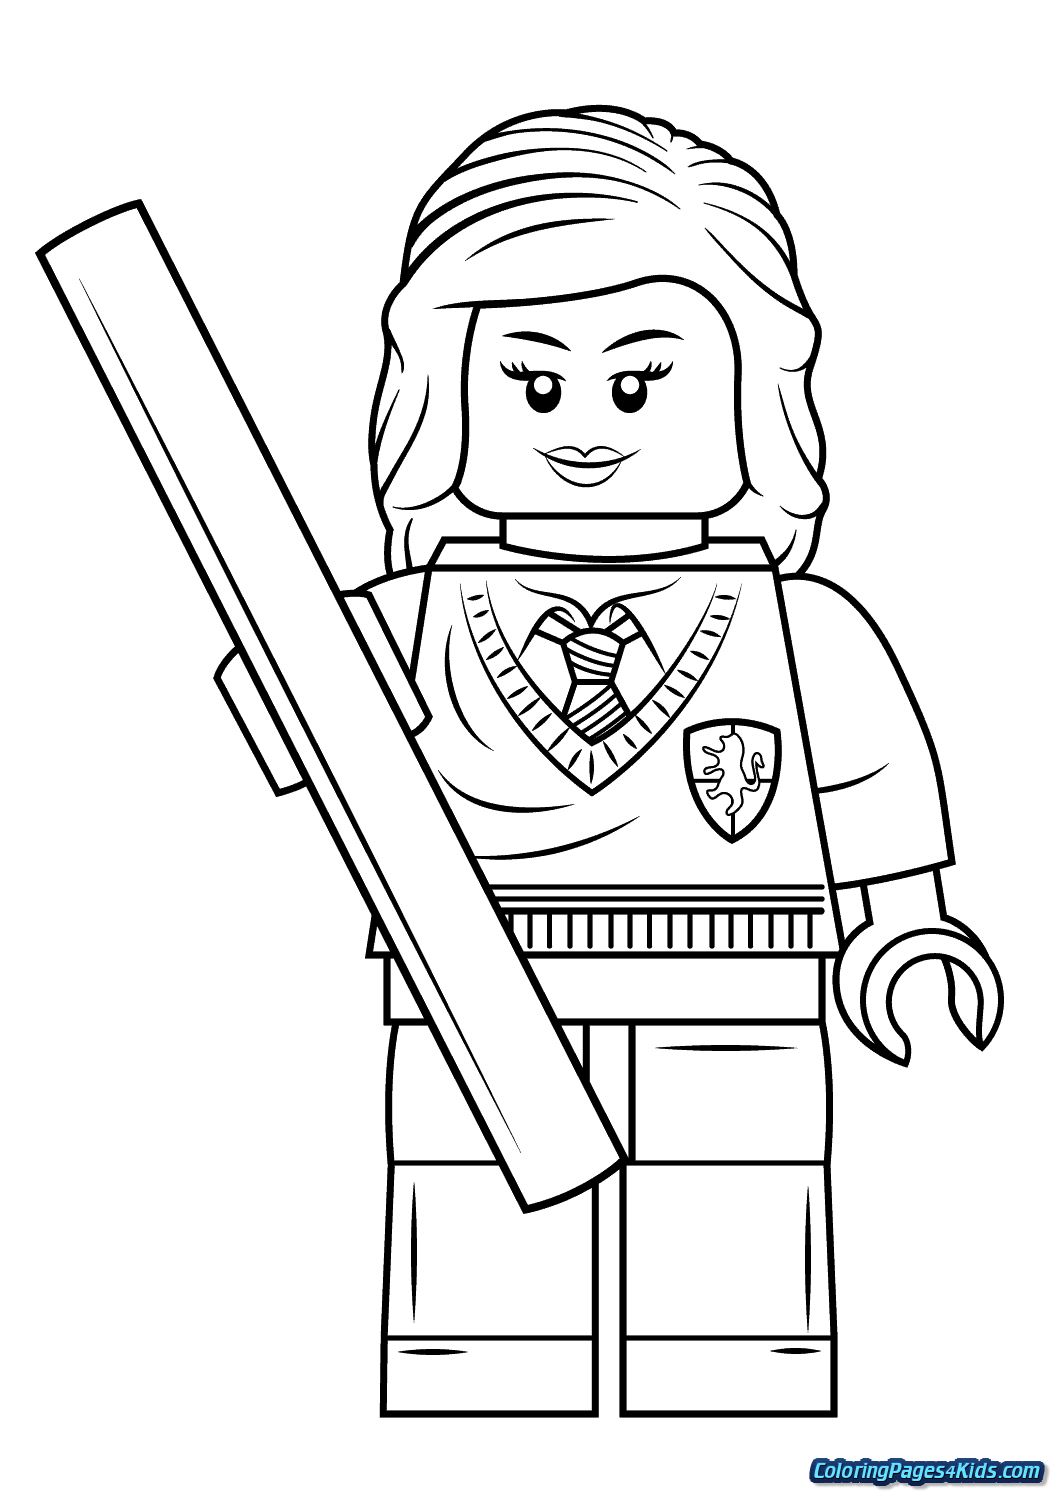 Lego Harry Potter Coloring Pages Free Harry Potter Coloring Pages Lego Coloring Pages Harry Potter Colors